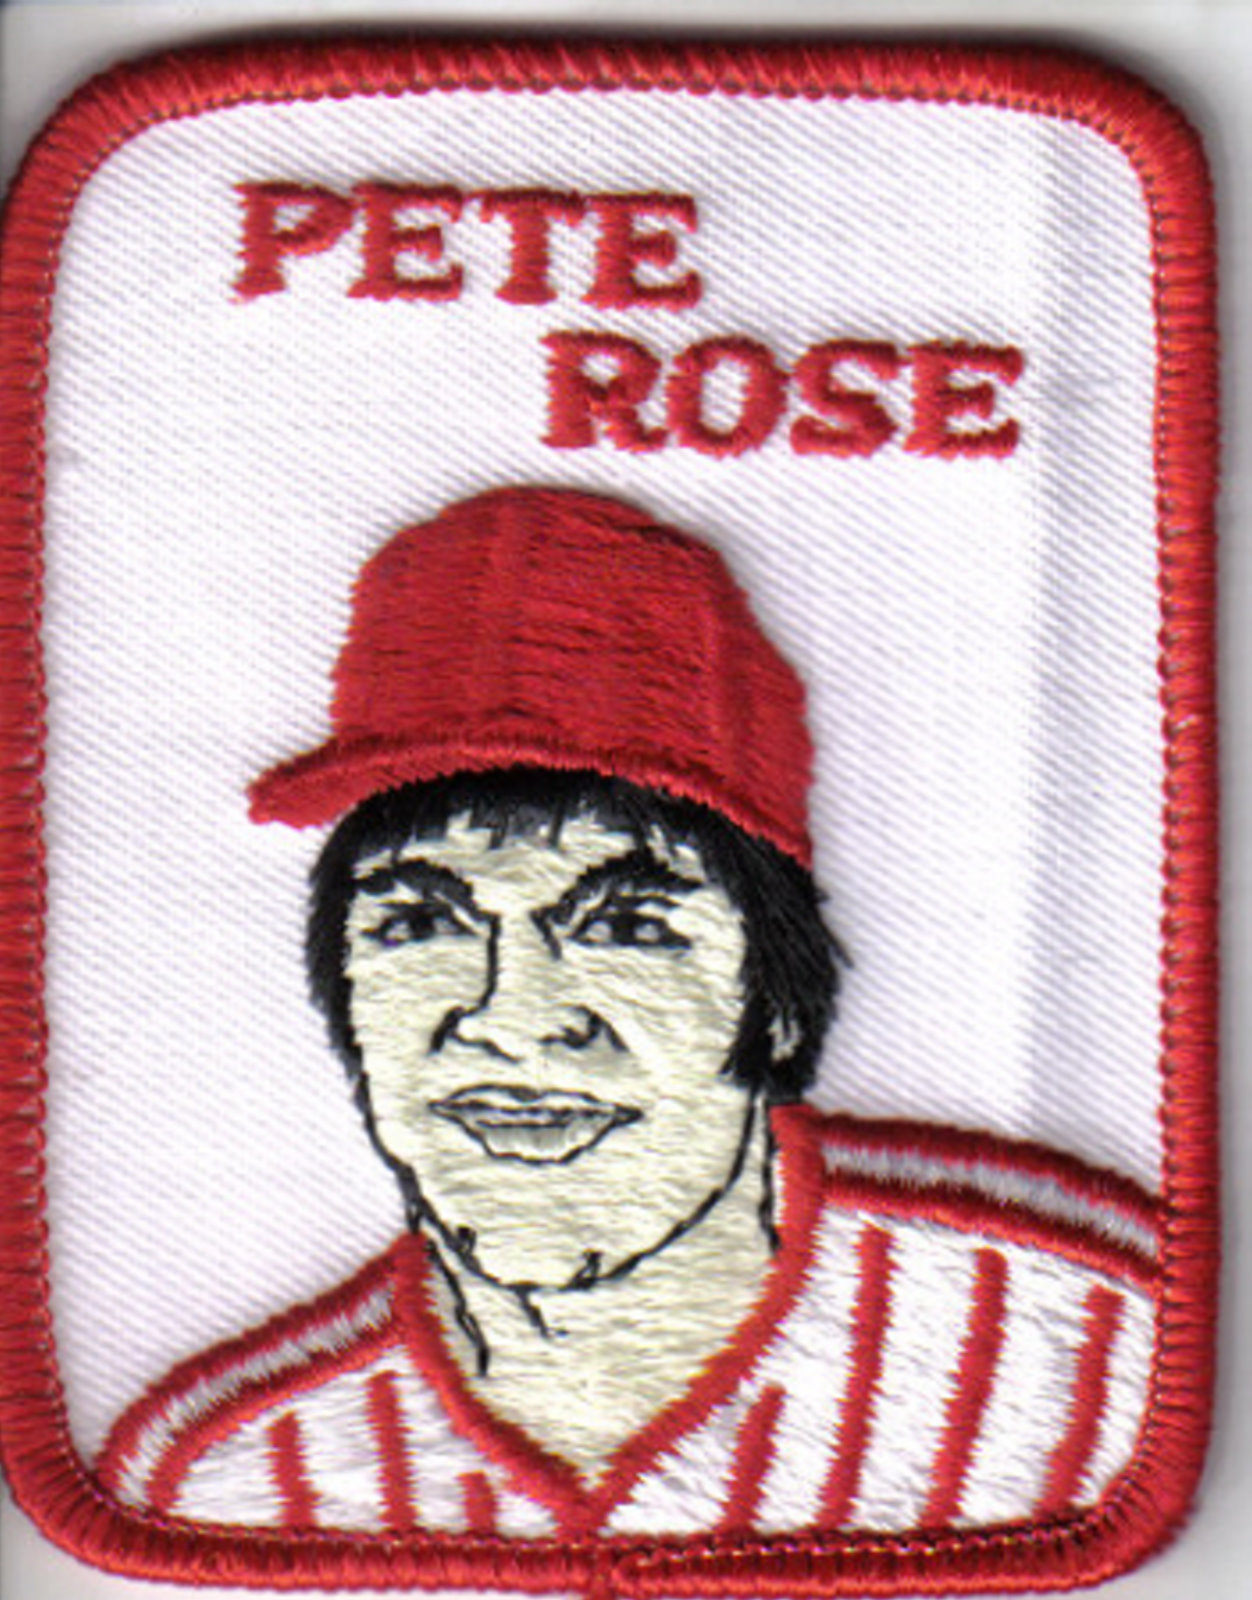 Pete Rose MLB patch 1978